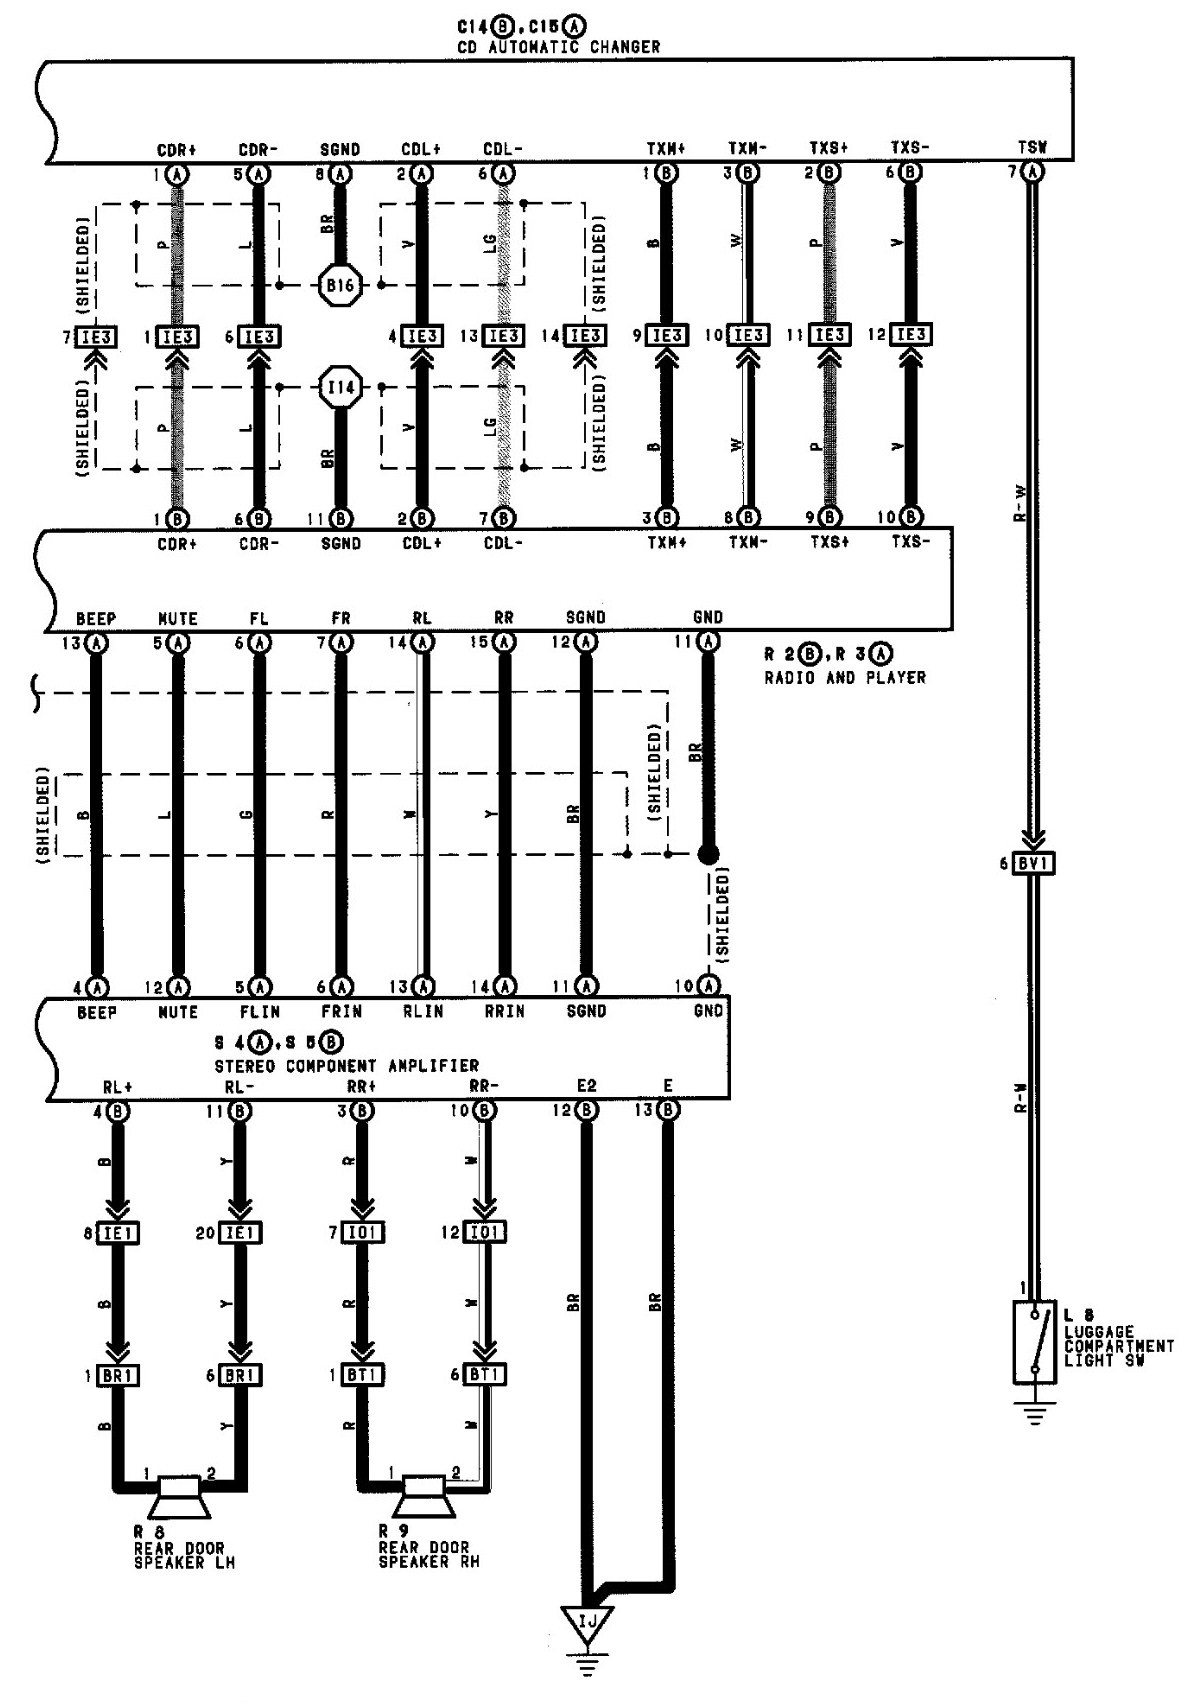 wiring diagram for 2000 toyota camry wiring data 1995 toyota camry neutral safety switch 2000 toyota camry engine diagram stunning 1995 toyota camry wiring 1999 toyota camry engine diagram wiring diagram for 2000 toyota camry